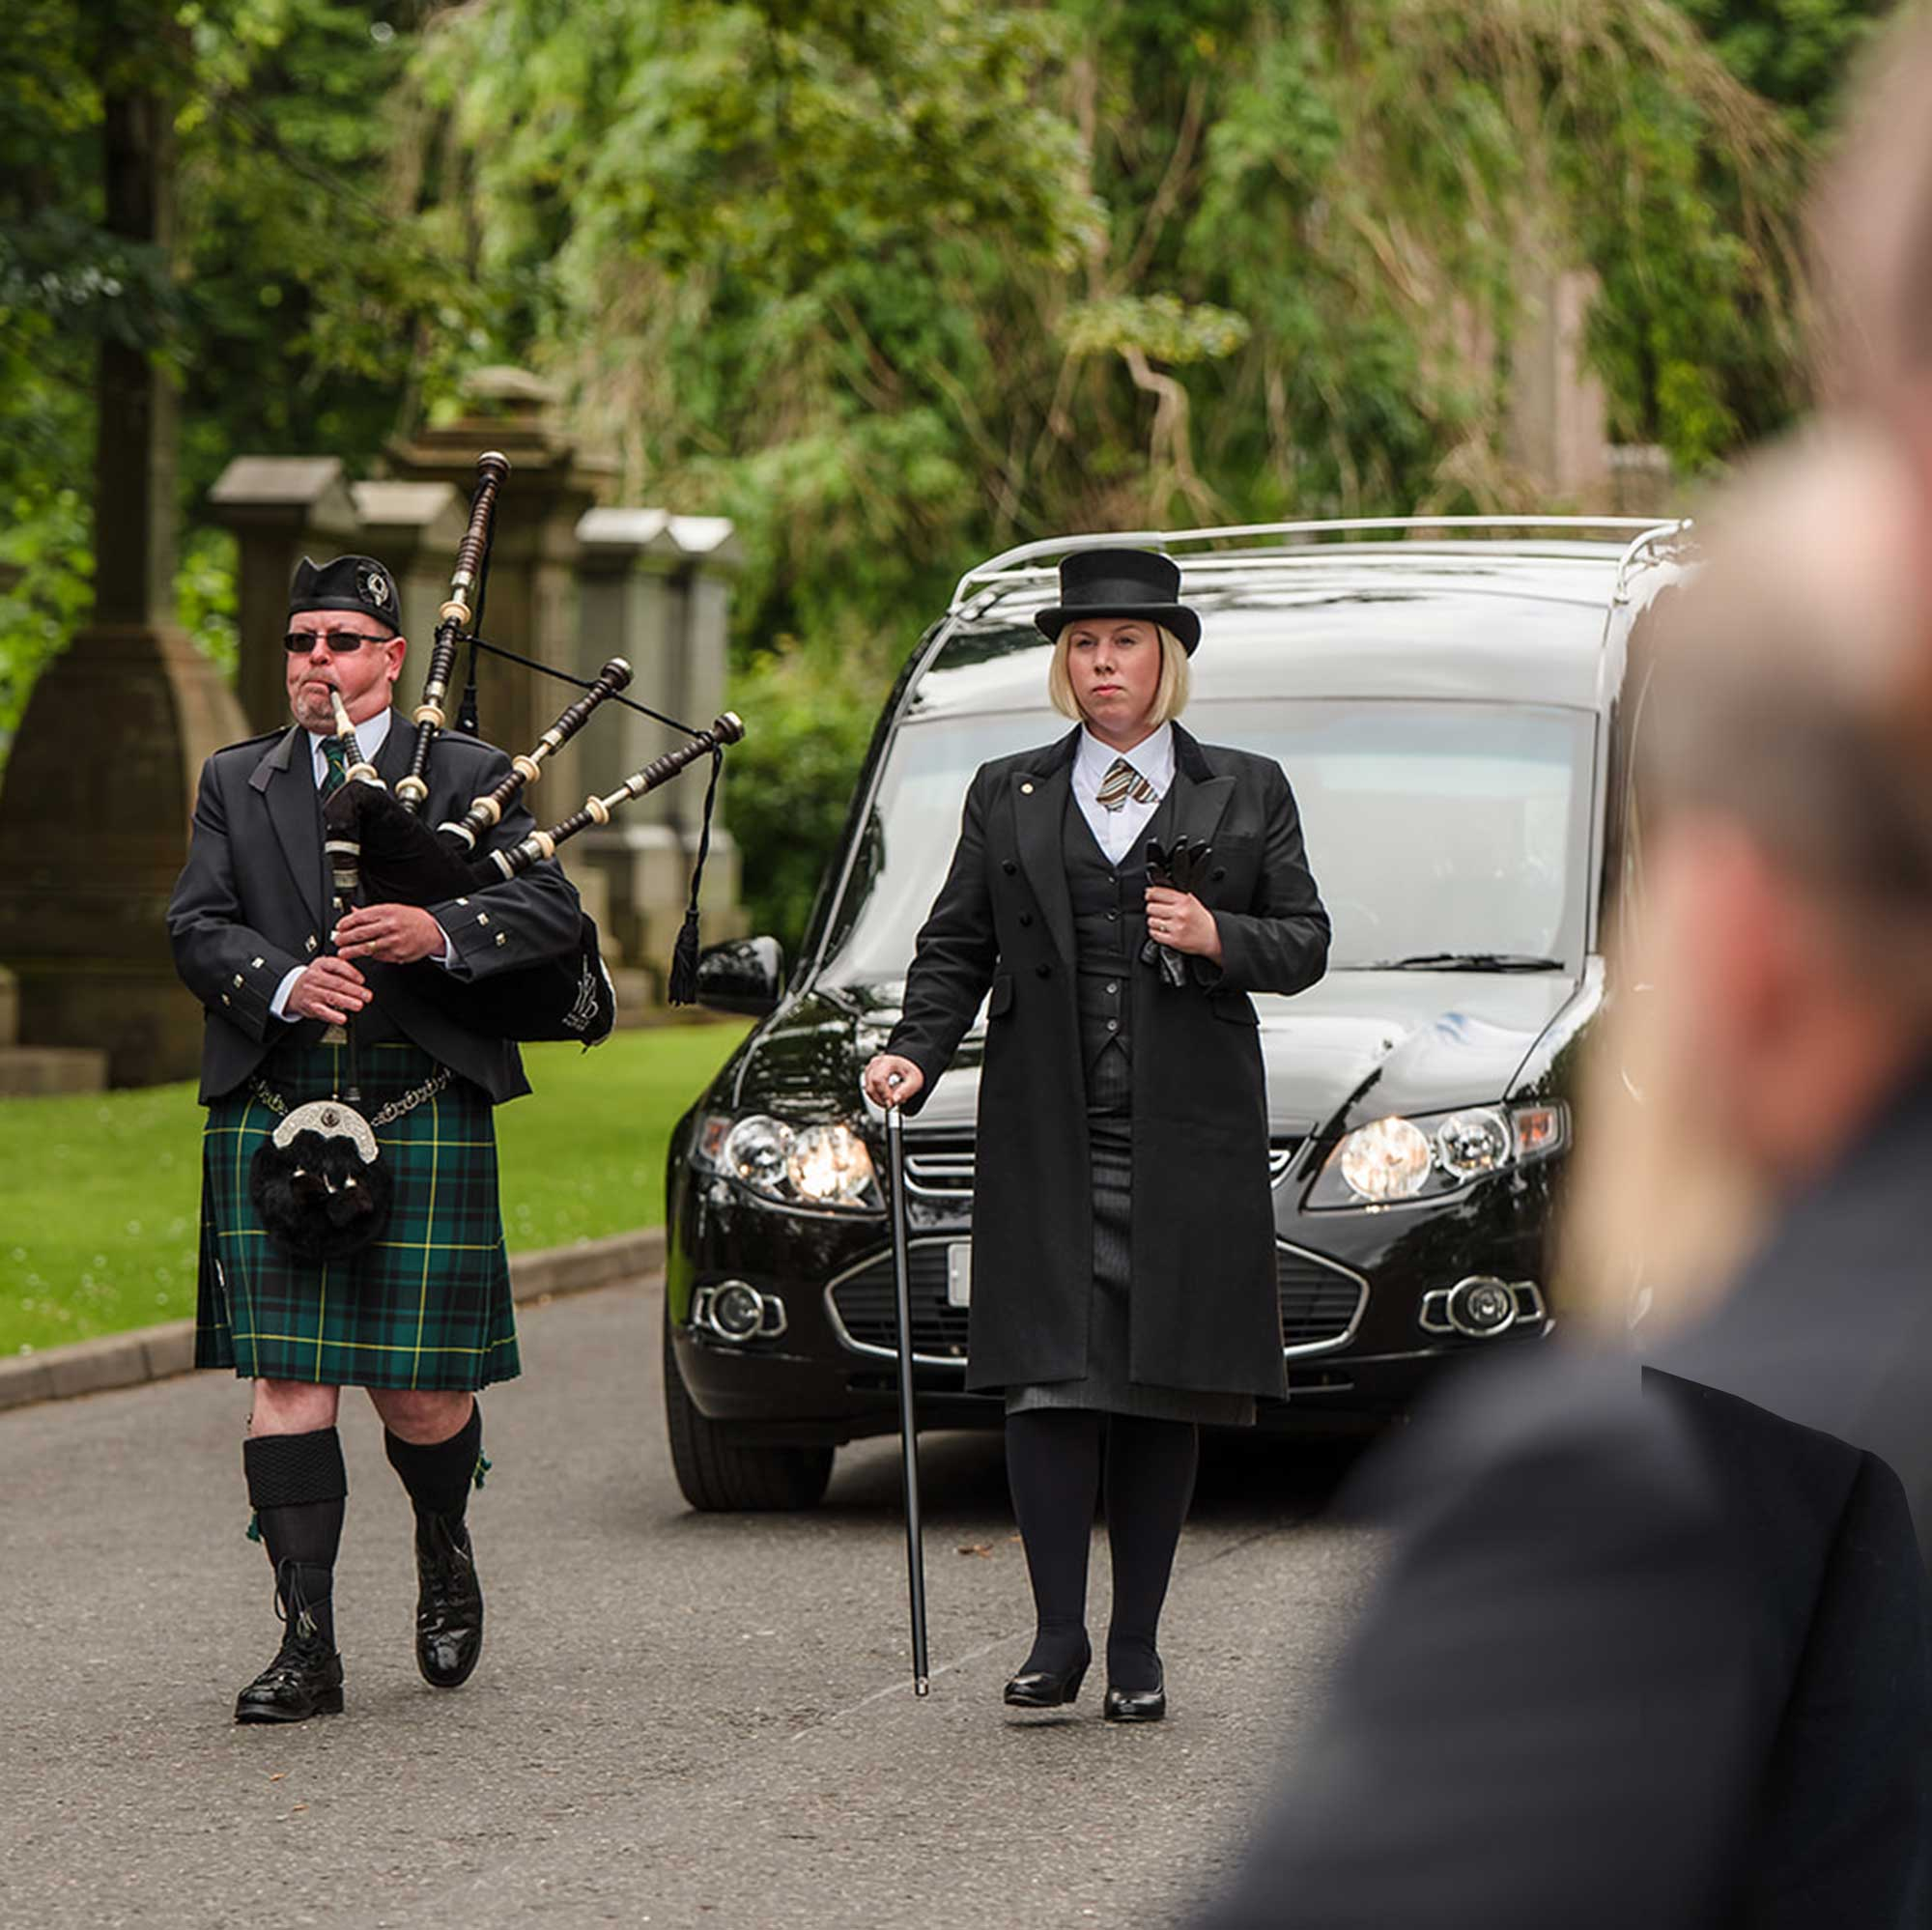 A piper and a funeral director walk in front of the hearse in the grounds of Woodside